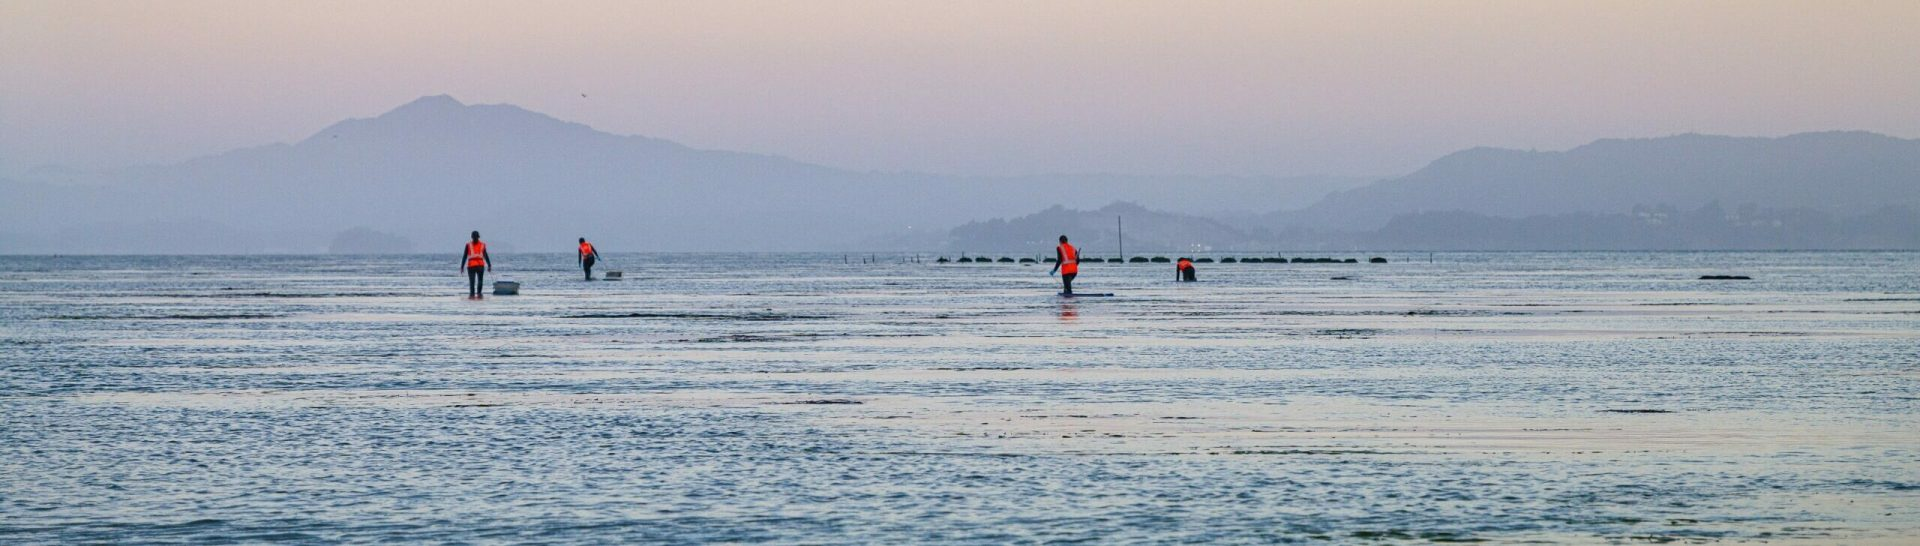 Nature-based infrastructure experiment at Giant Marsh, oyster reefs in distance. Photo: Jak Wonderly